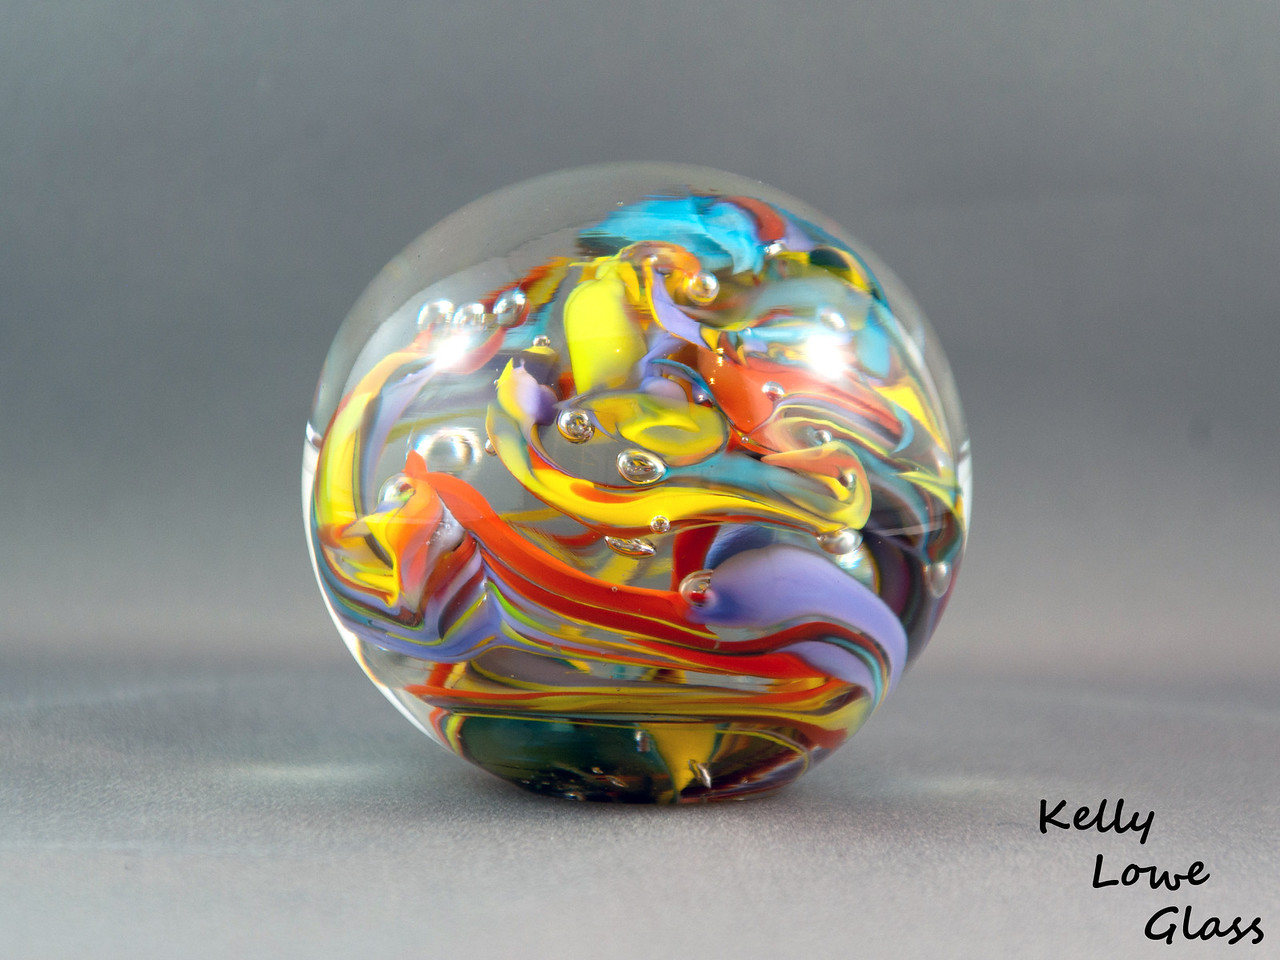 "Glass Paperweight:  Widest Point: 8.5cm (3.35"") Height: 7.5cm (2.95"") Weight: Approx 772g (1.7 lbs)  (This particular paperweight has sold, and is left here as an example piece)"